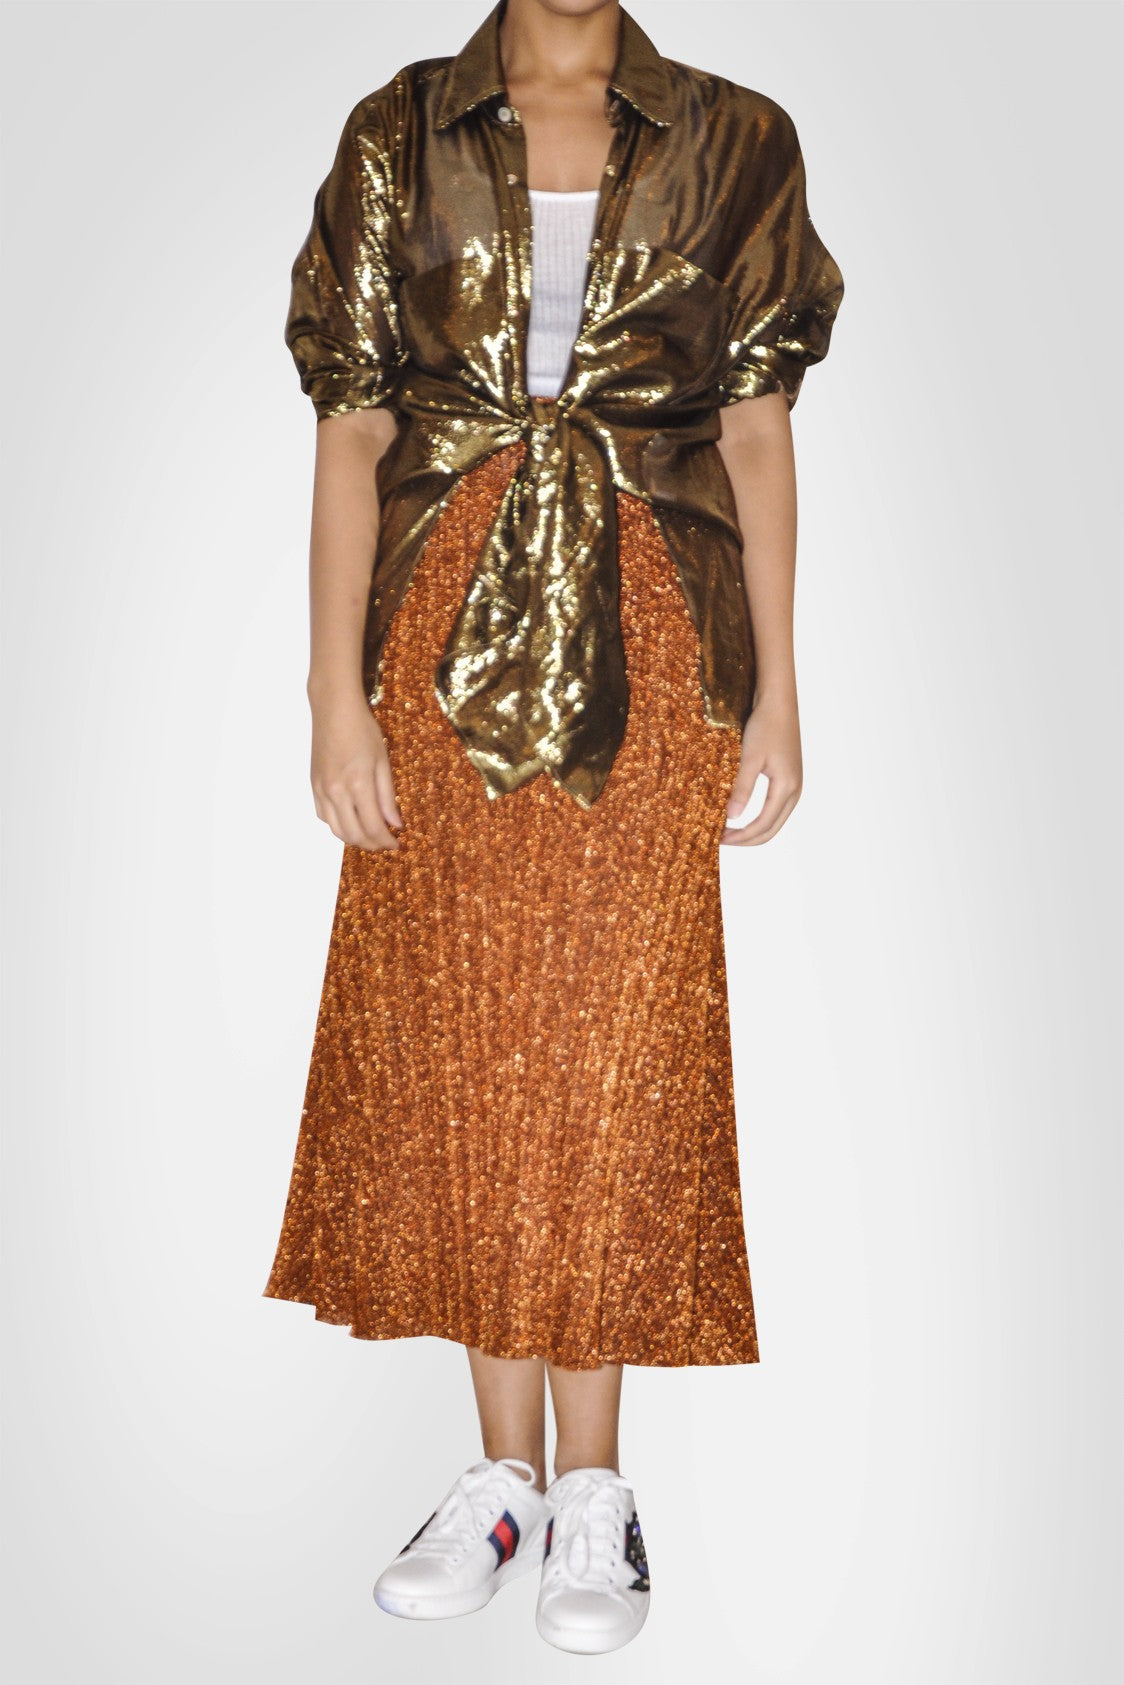 Bronze A Cut Skirt